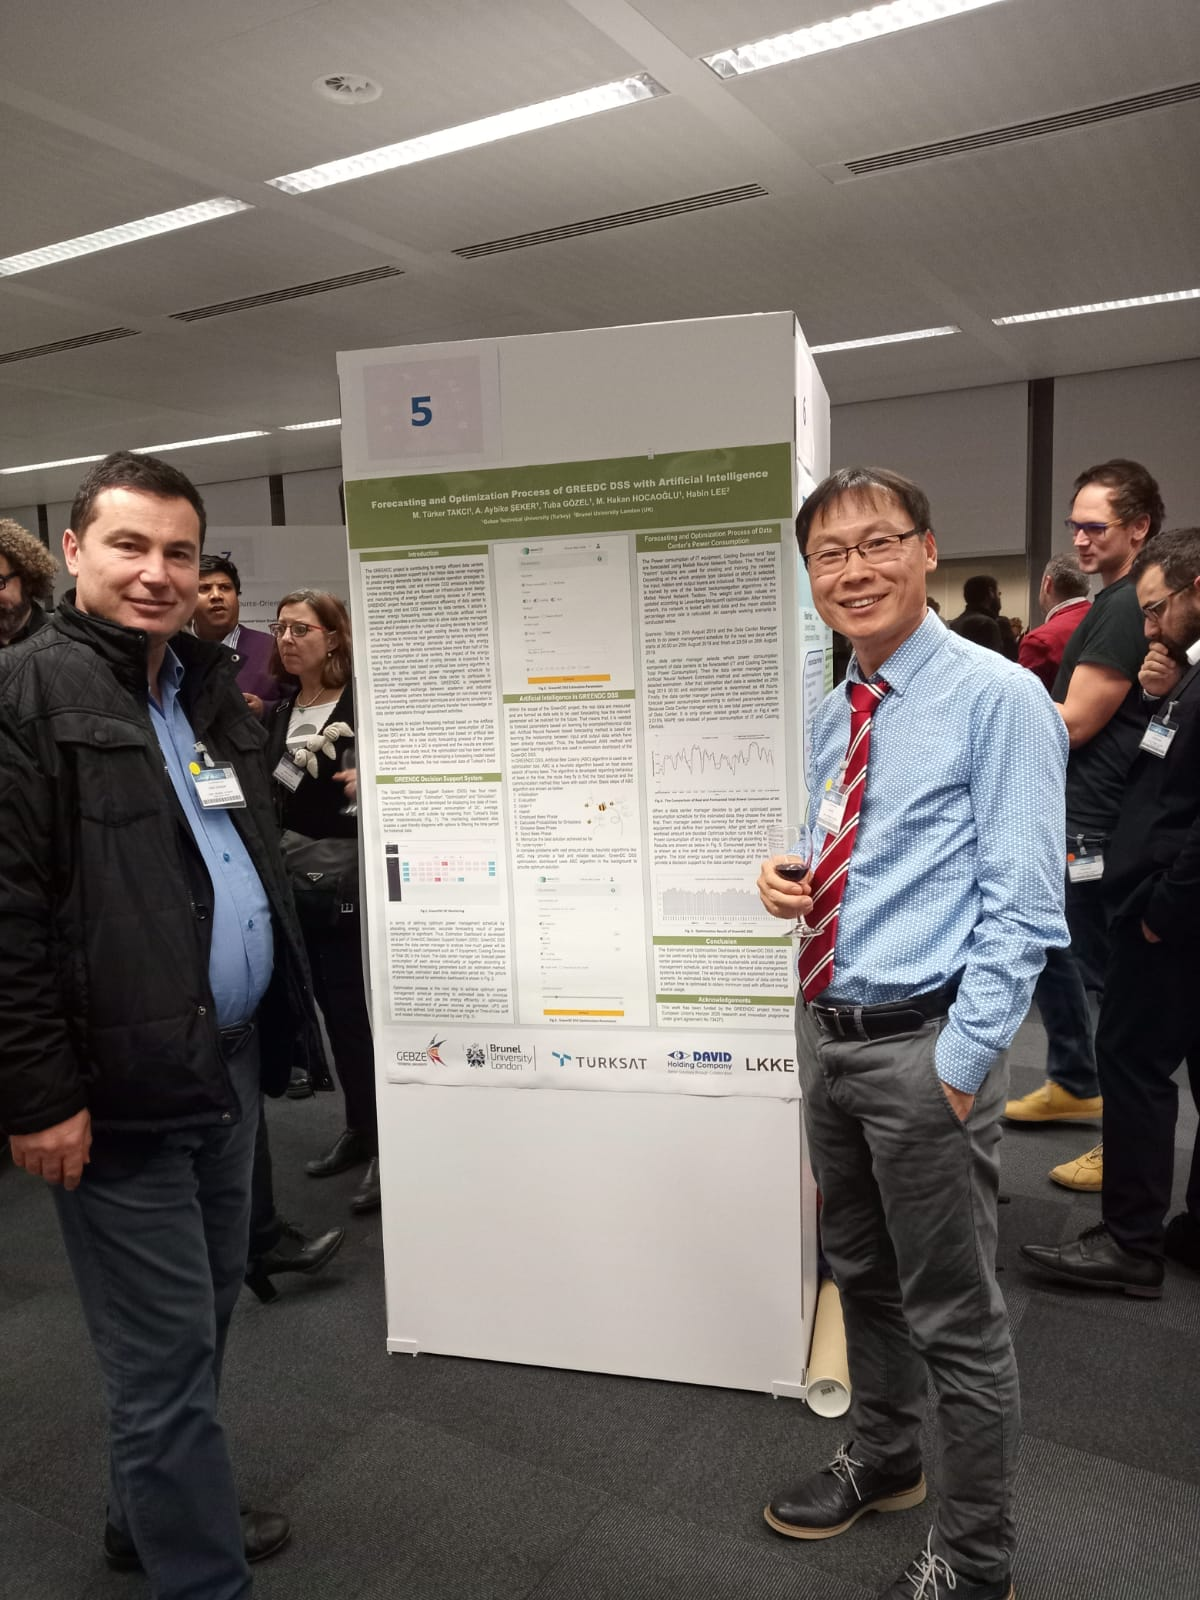 MSCA AI cluster meeting - 10-11 December 2019, Brussels